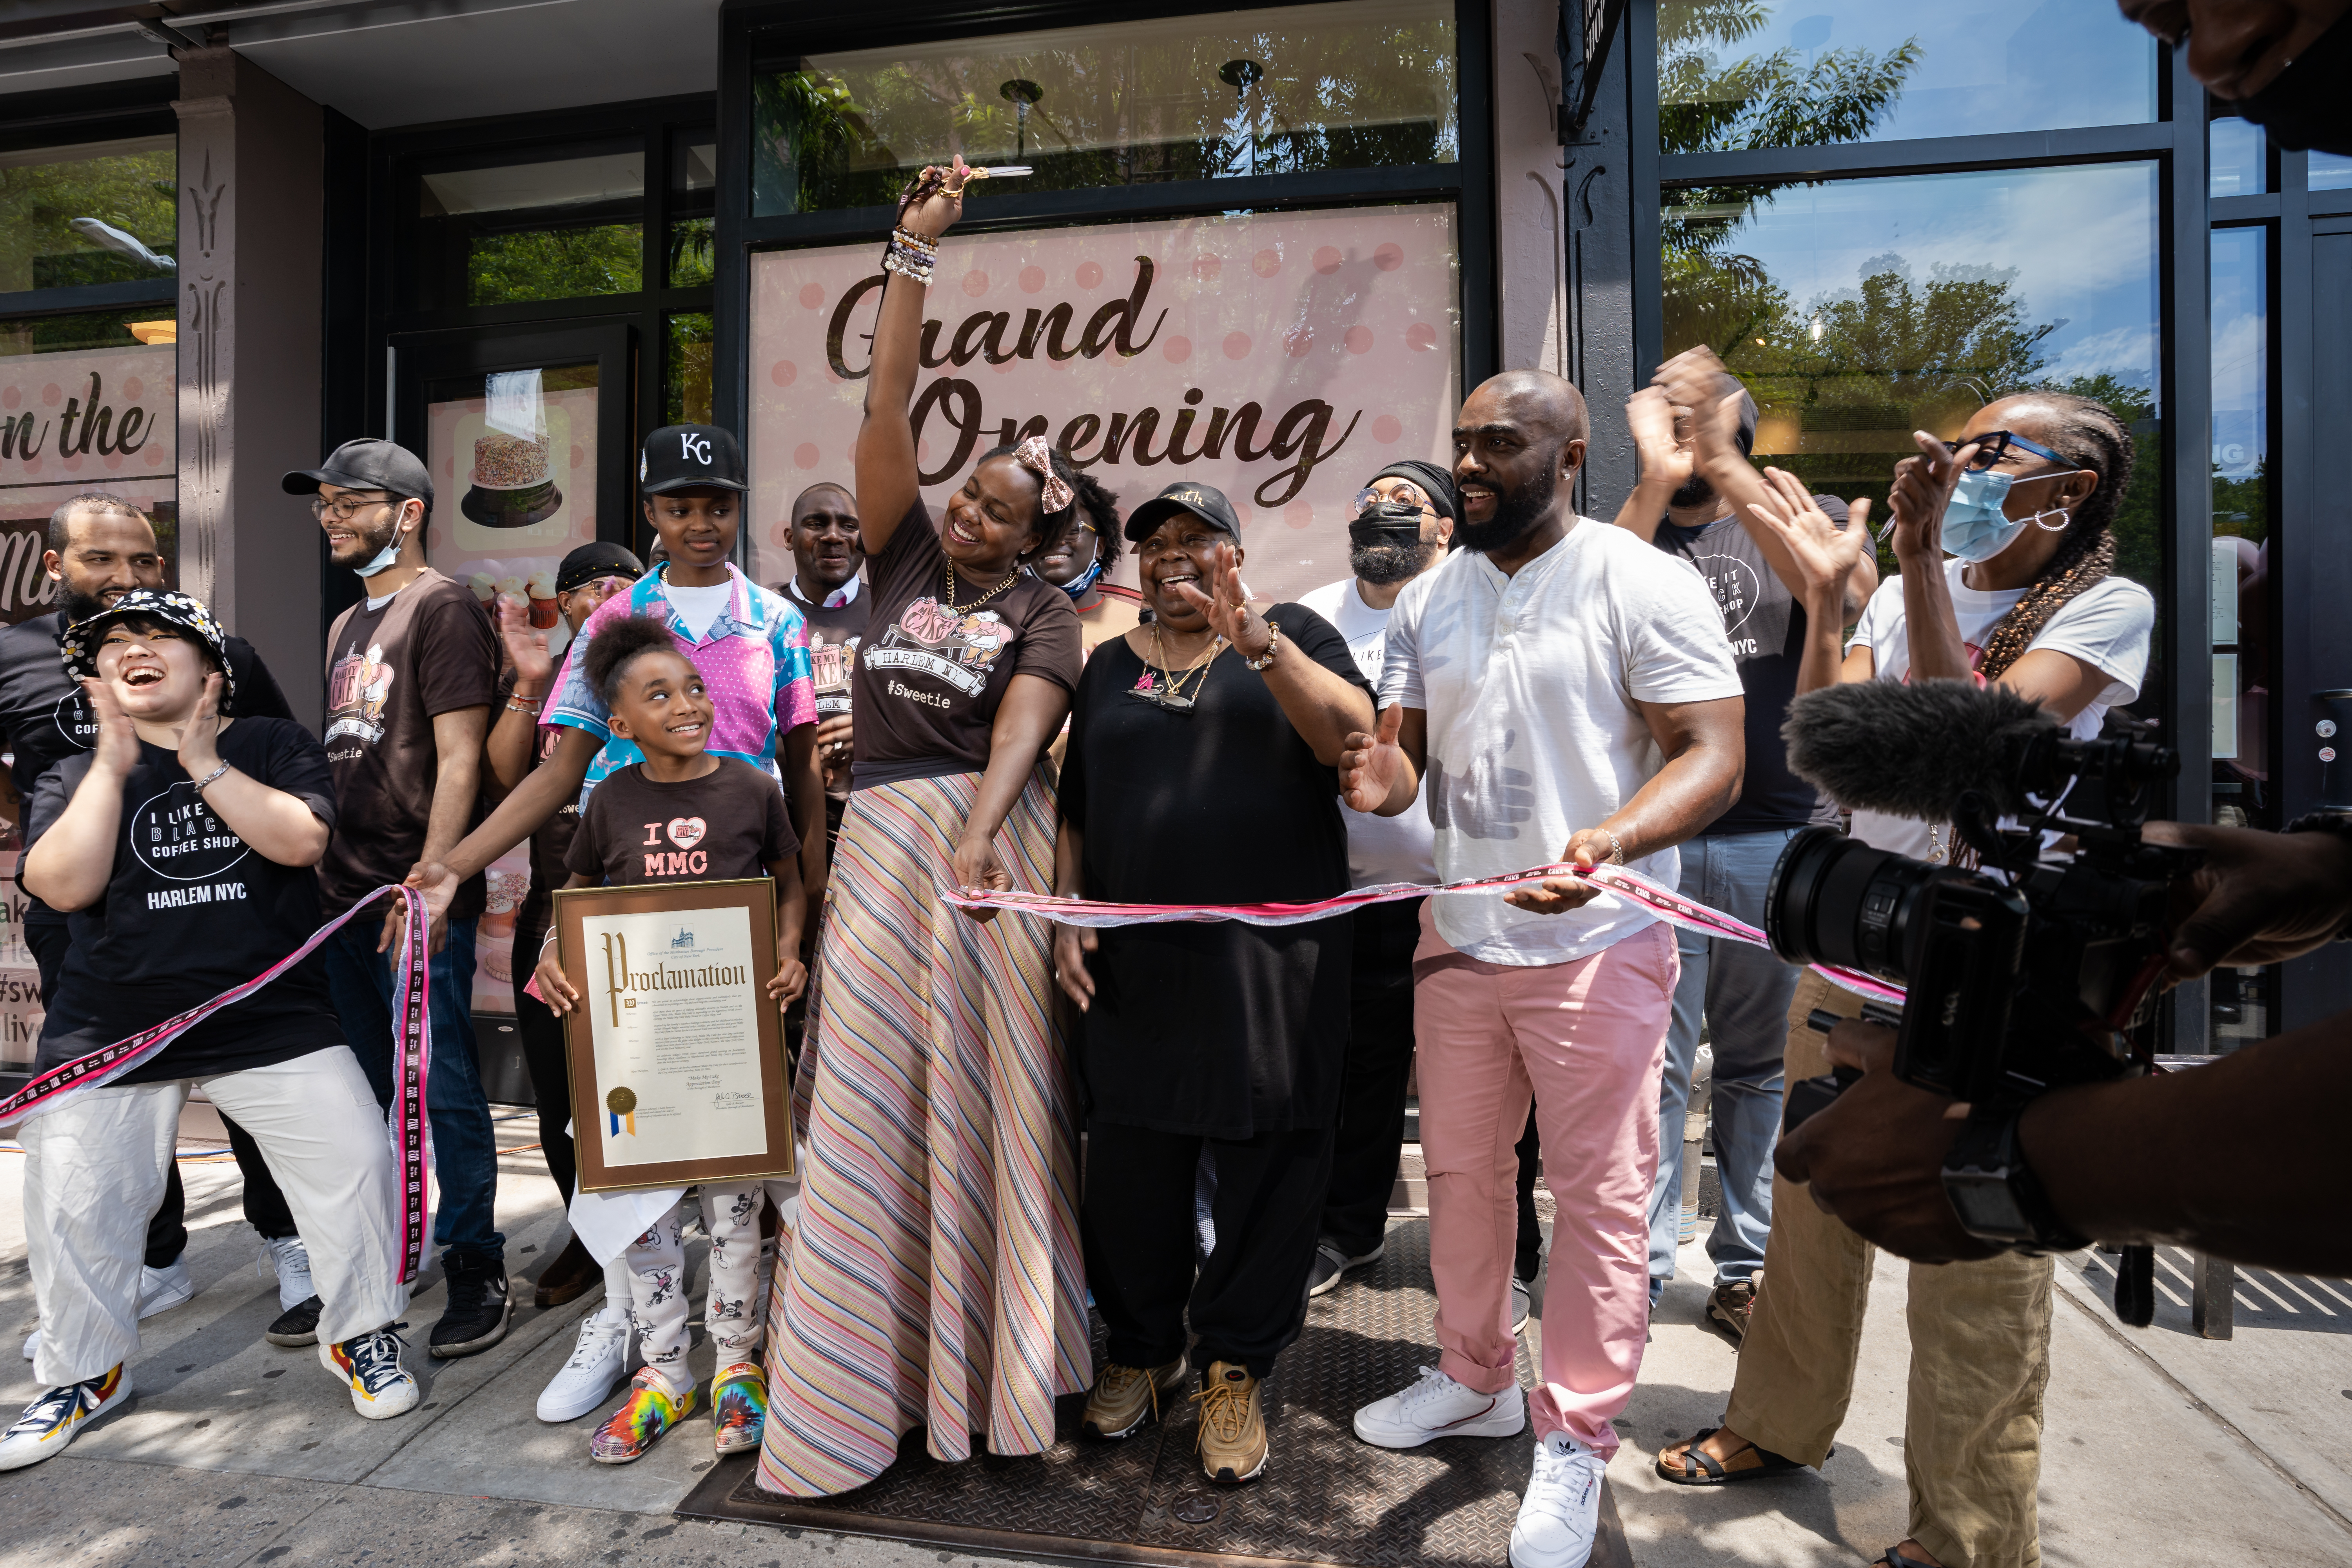 """A group of people celebrate a ribbon cutting in front of a restaurant, whose sign reads """"Grand Opening"""" in cursive font"""